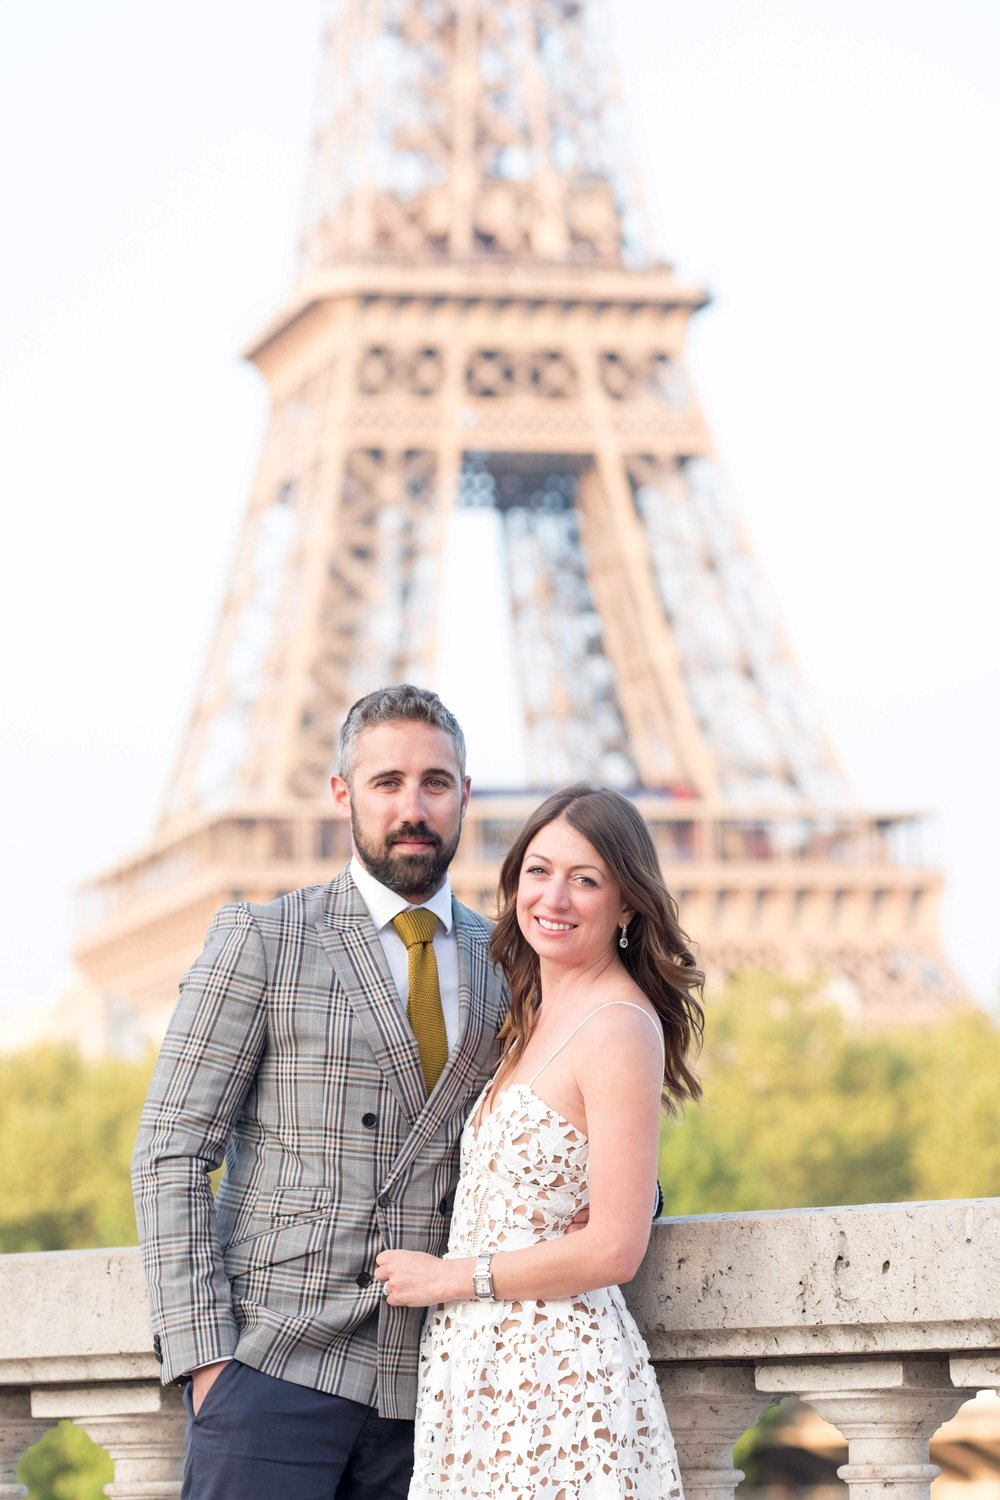 tommy & kate - This super elegant couple from south of London was amazing to work with on a gorgeous April Paris evening. Just married, they exuded love, elegance and class. I'm so glad they contacted me to capture their mini-moon in Paris, and I wish them tons of love and all the best for a bright future together! Thank you Tommy and Kate!See more images here